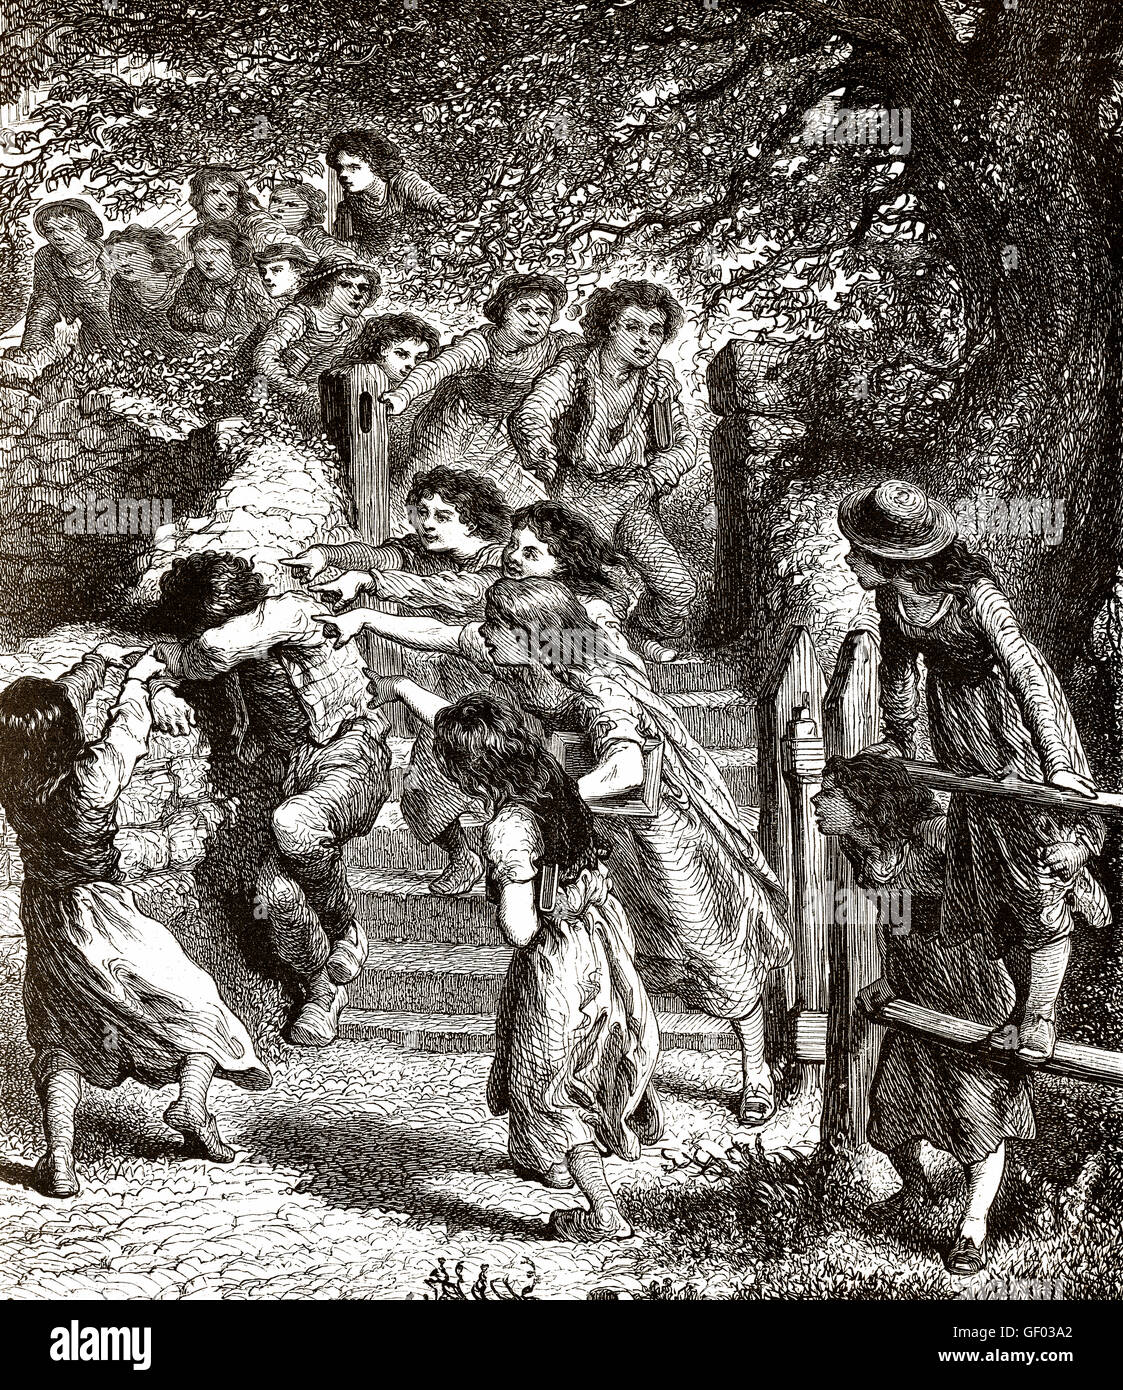 Children bullying of an individual by a group, 19th century - Stock Image